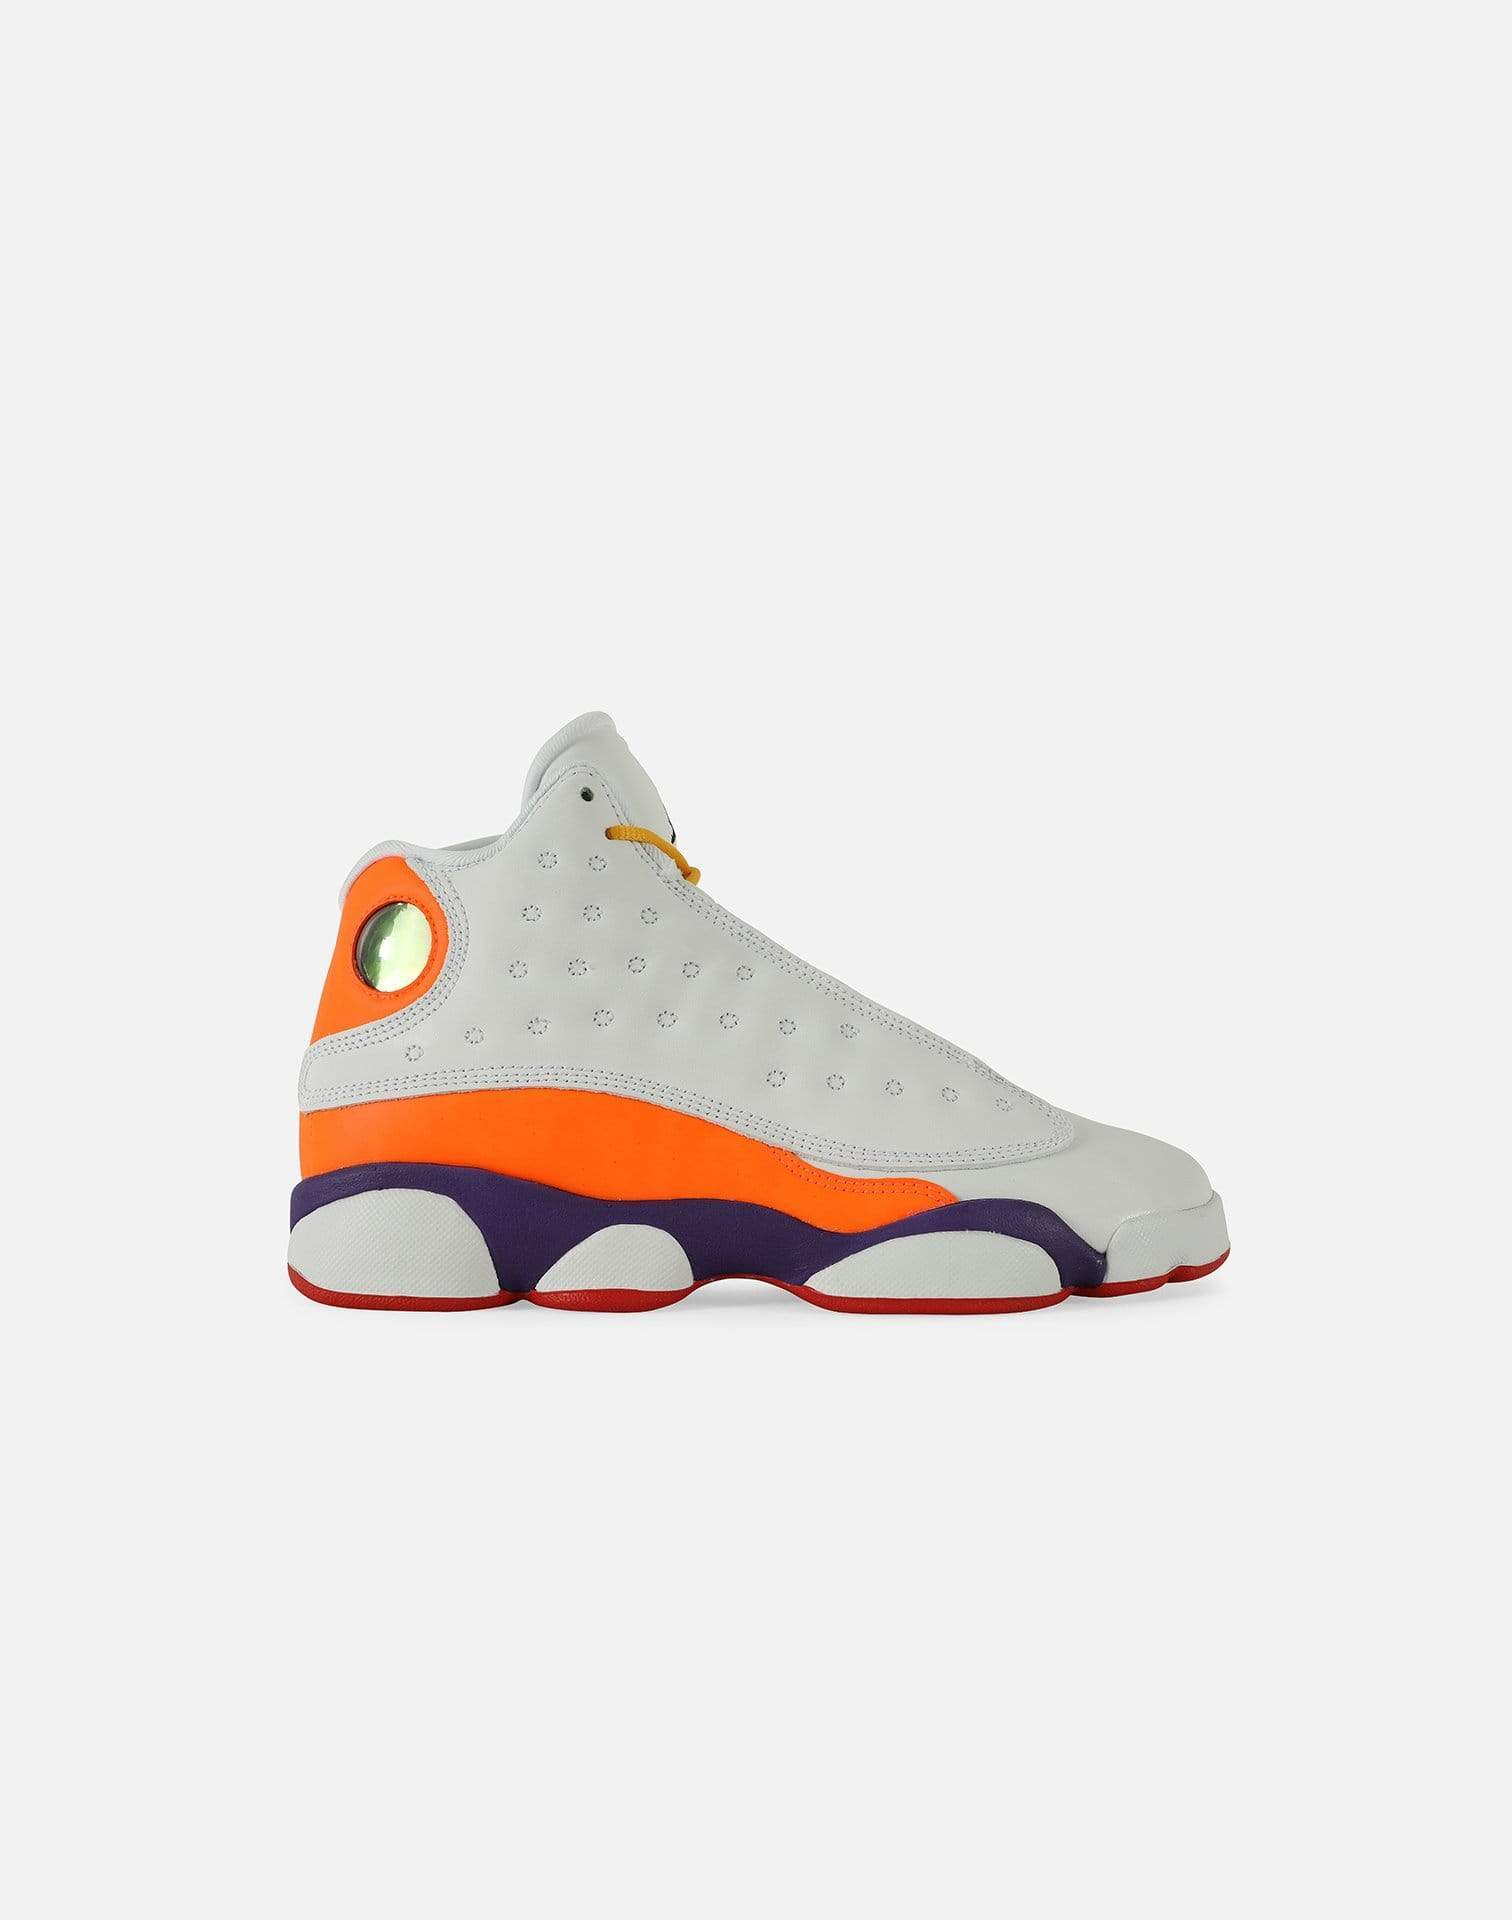 AIR JORDAN RETRO 13 KSA 'PLAYGROUND' GRADE-SCHOOL